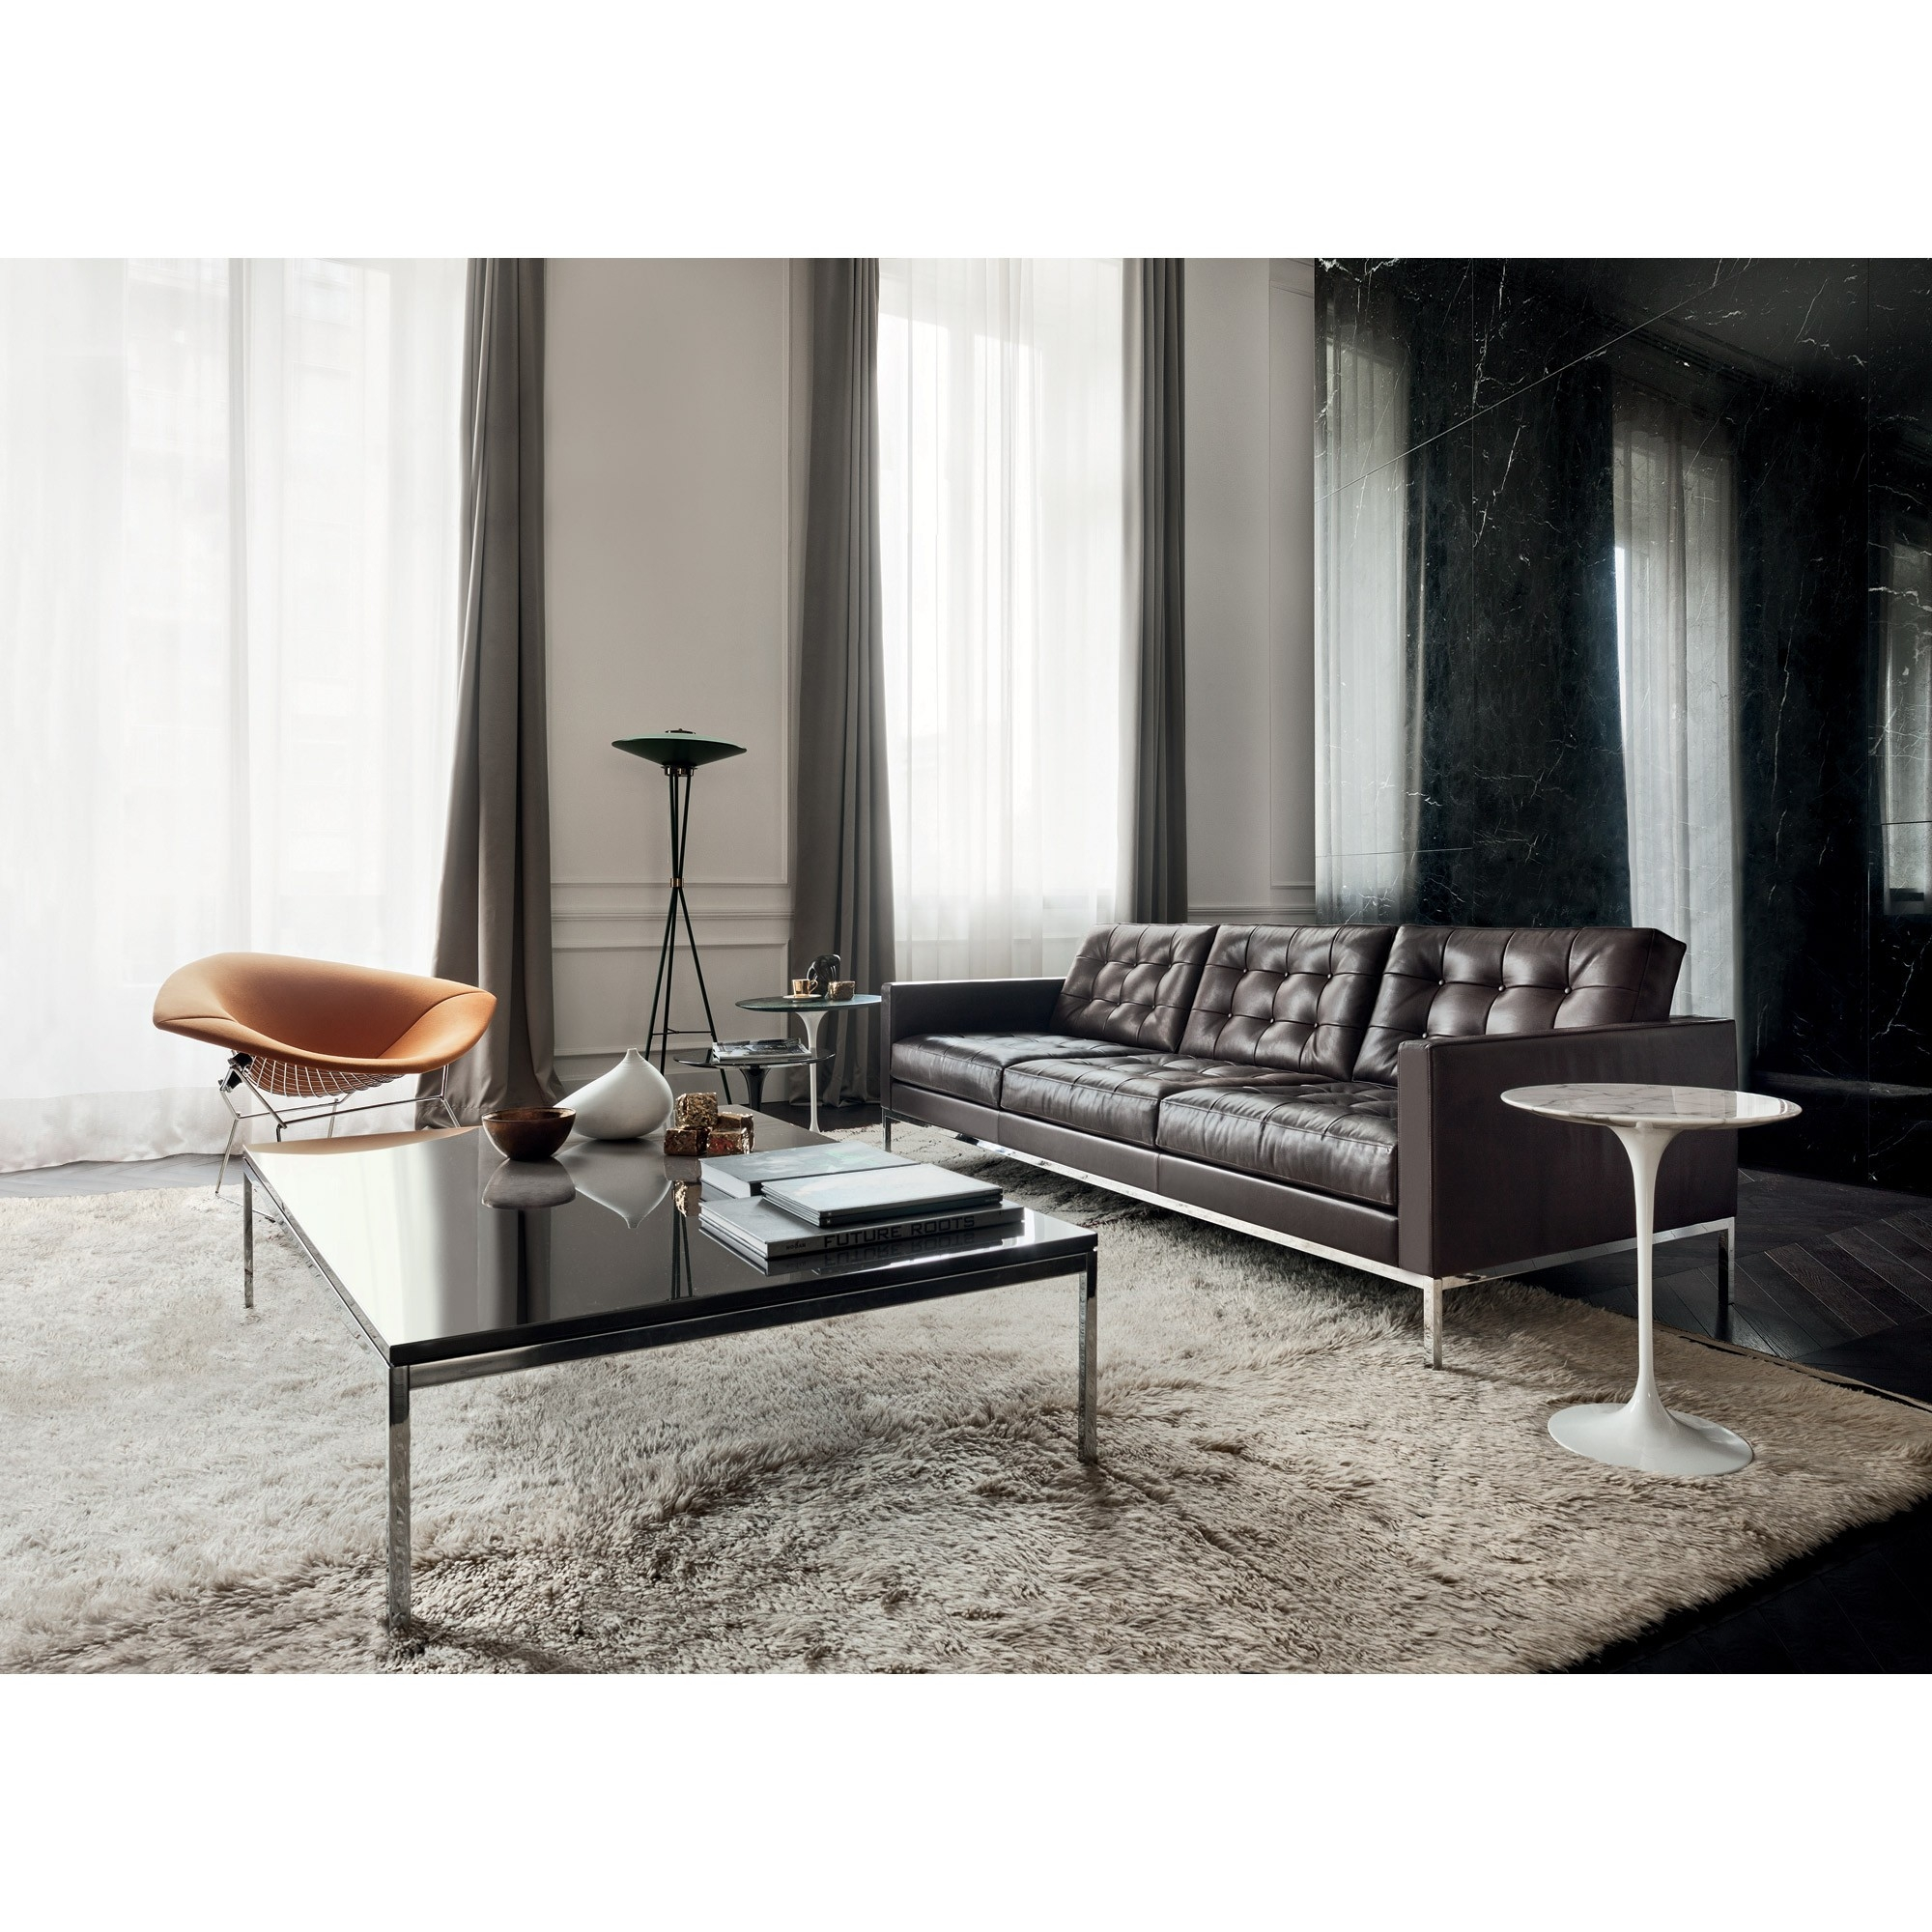 Natuzzi Editions Florence Leather Sofa Reviews Rs Gold Sofa In Florence Leather Sofas (Image 10 of 15)